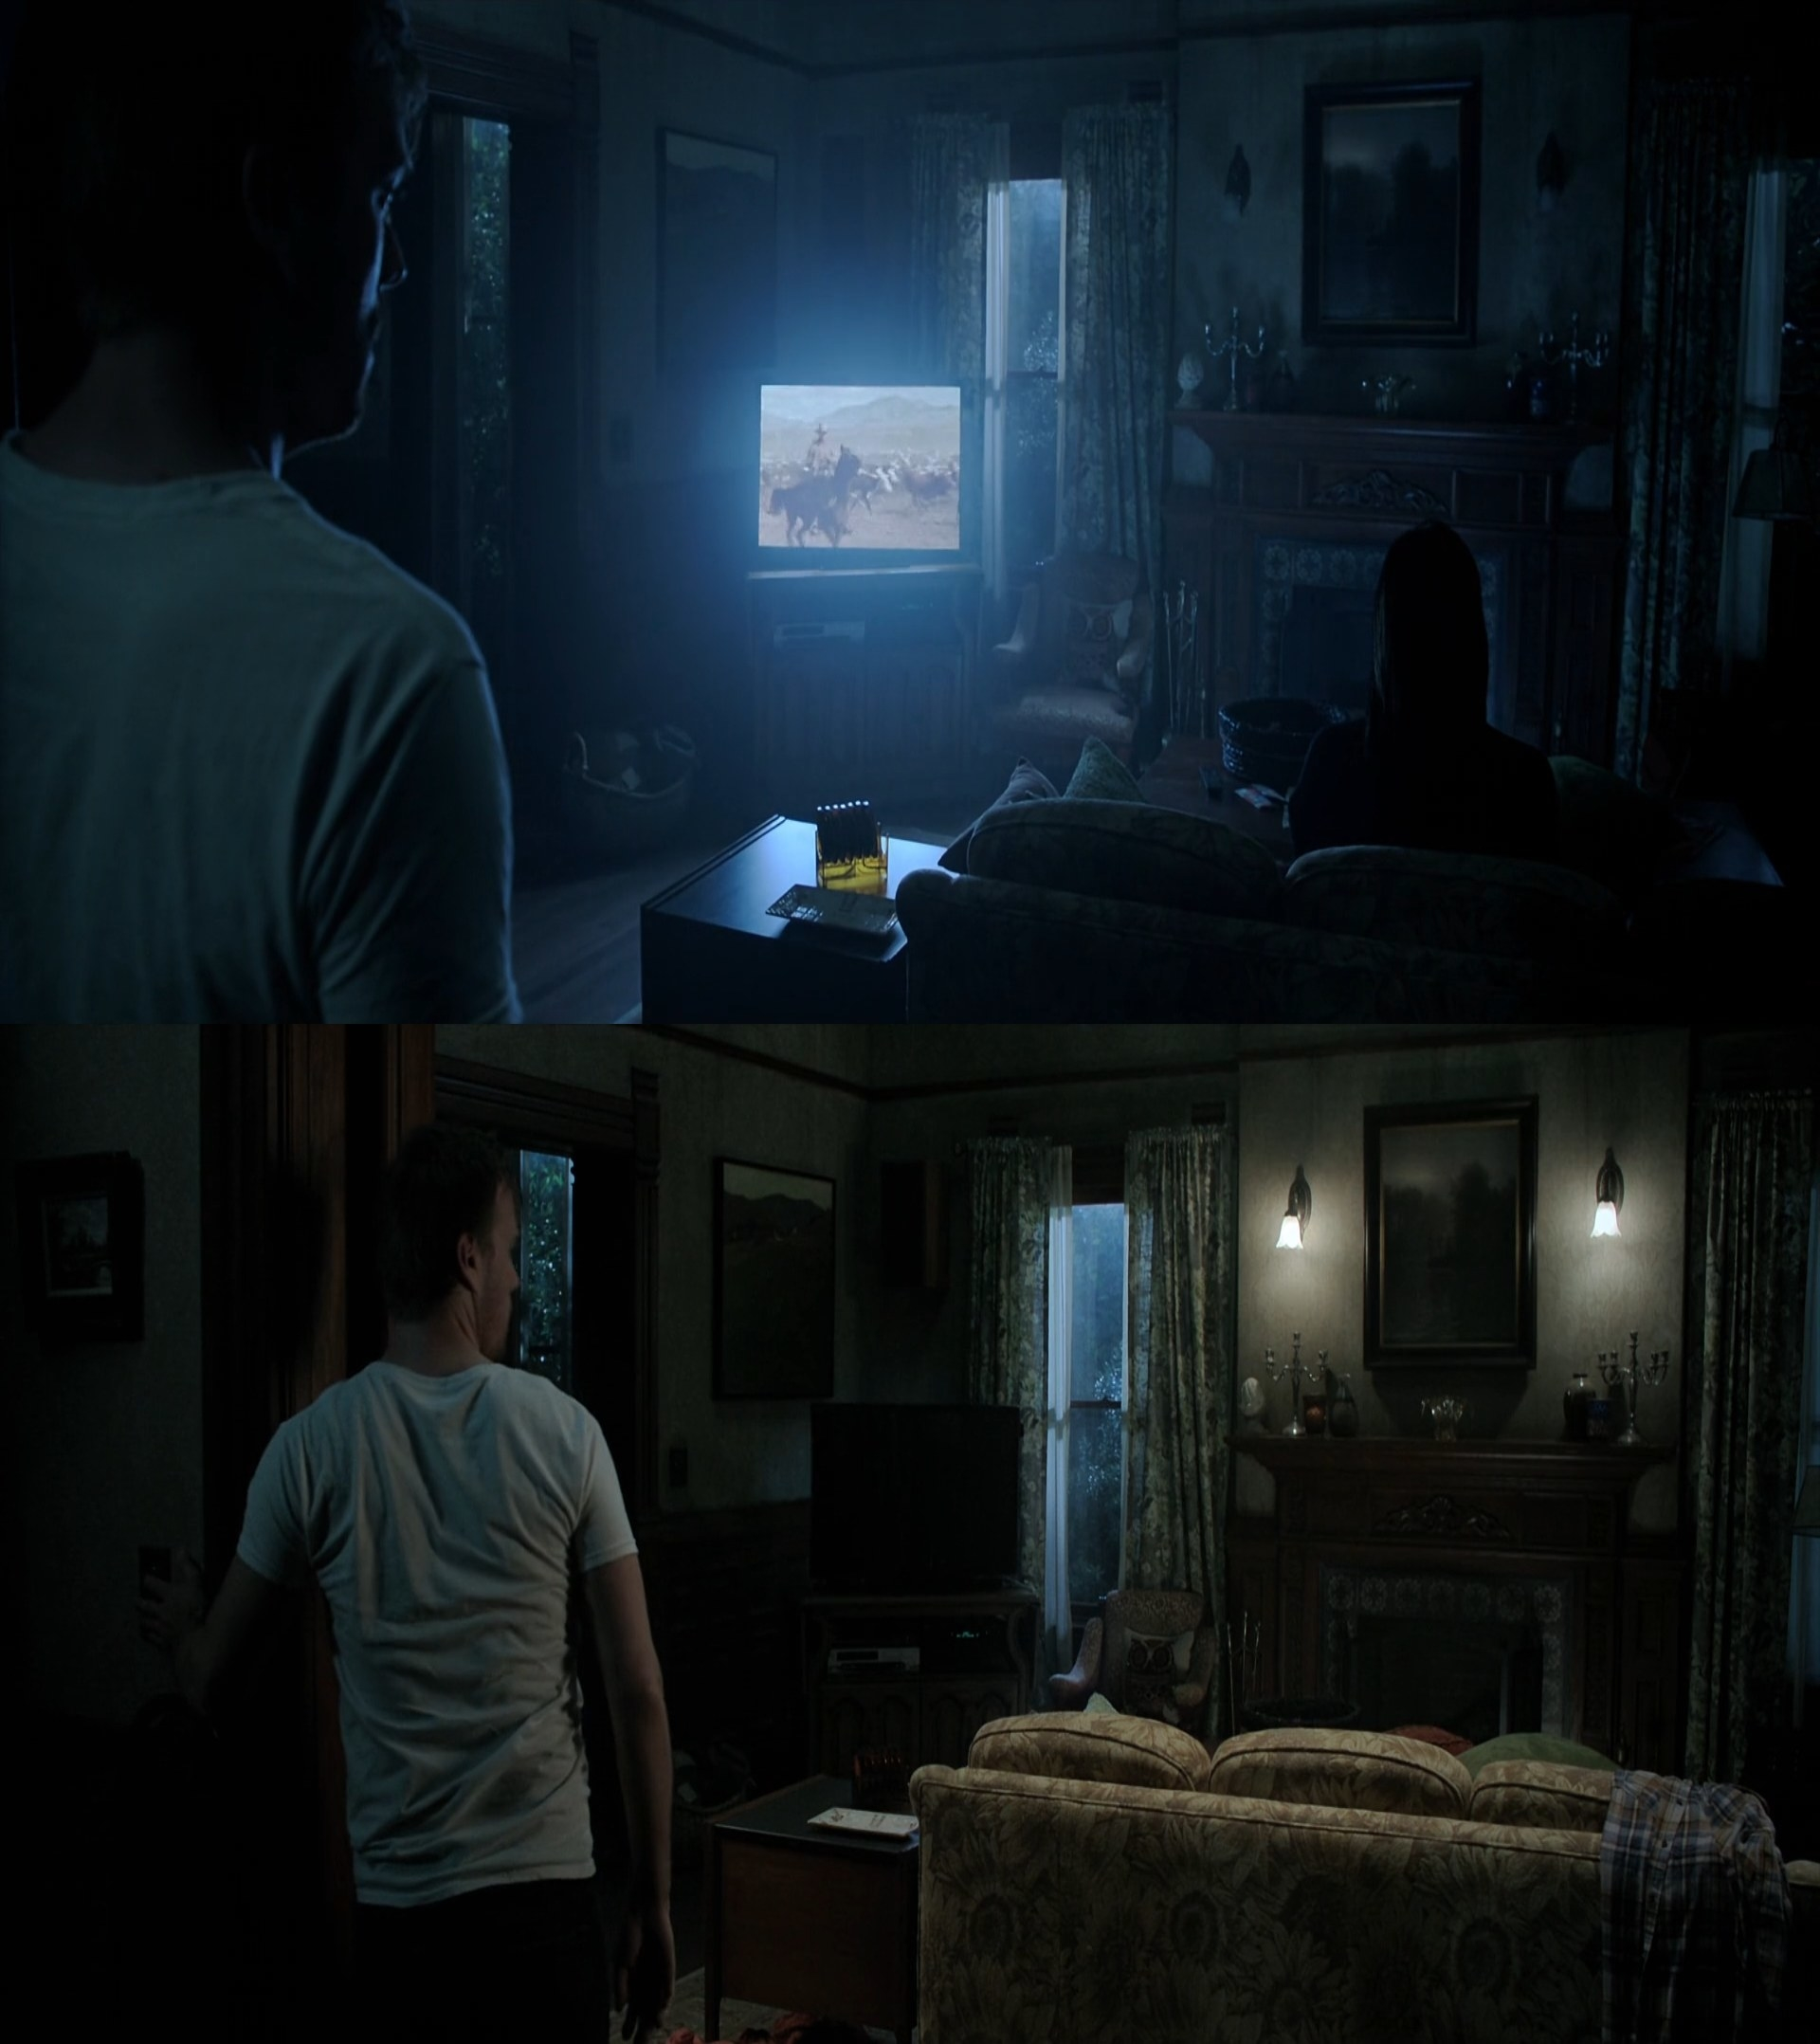 Someone watching TV in the first picture disappears in the second.